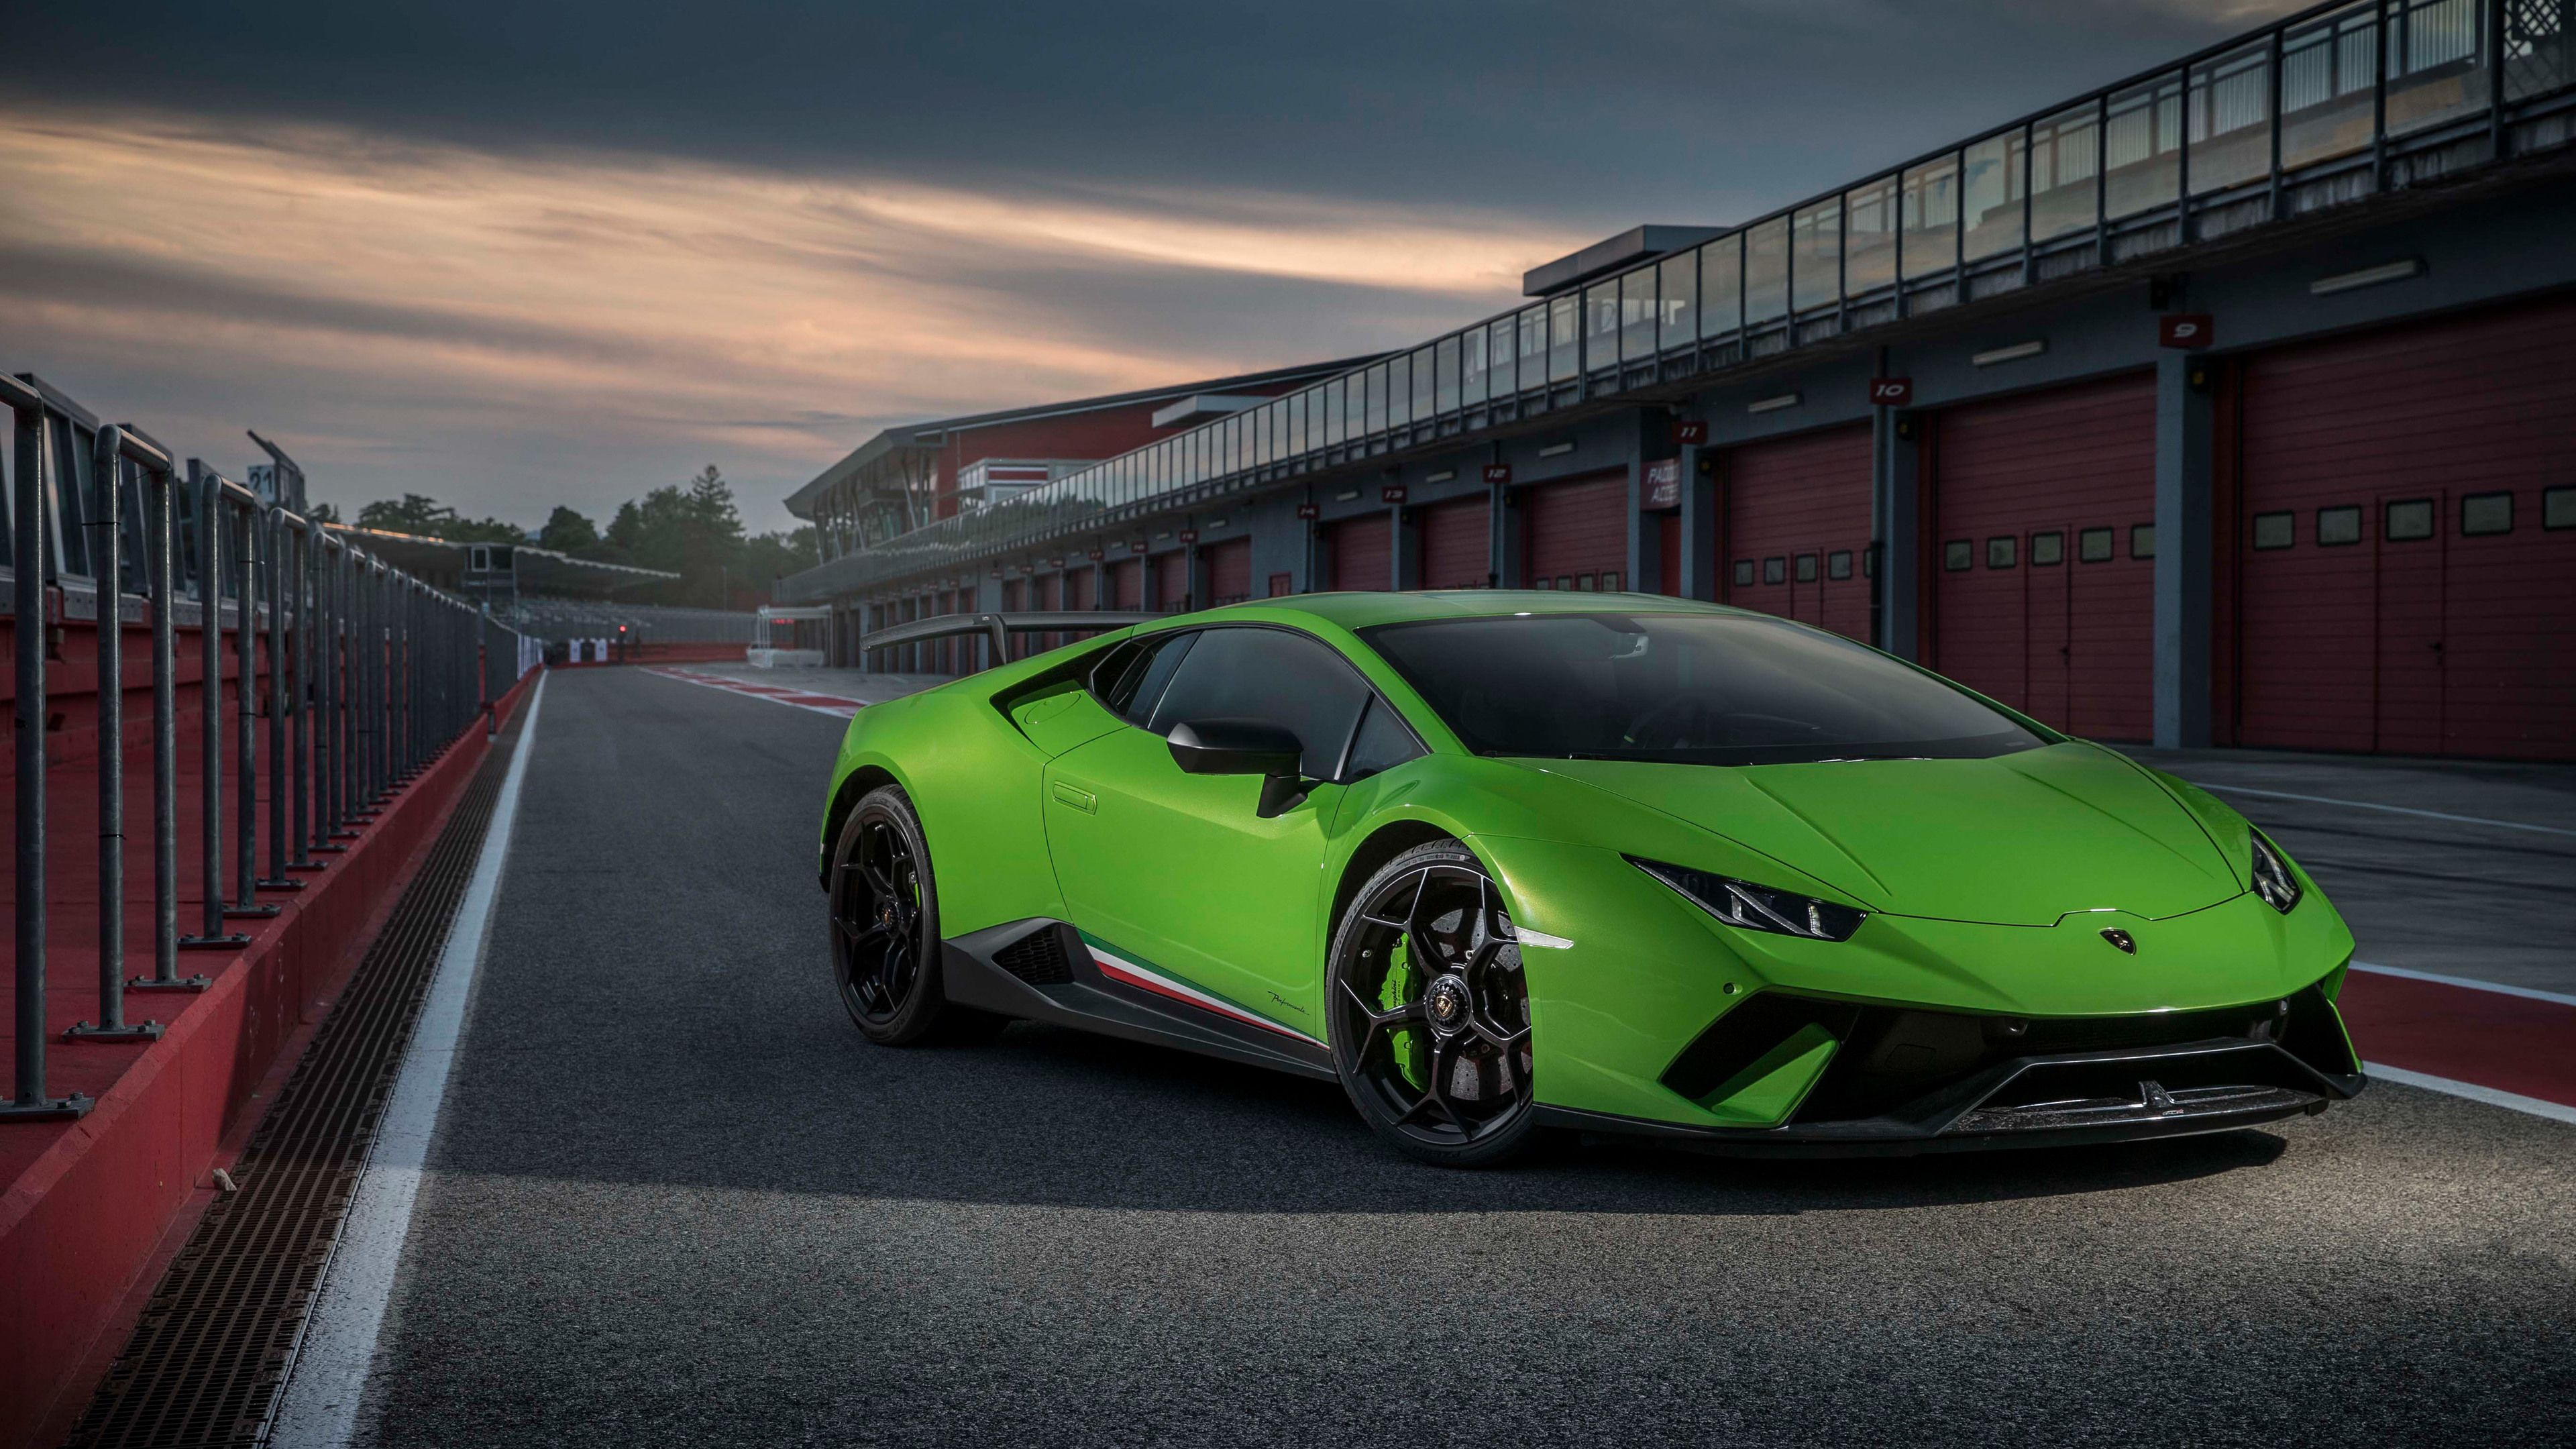 2018 Lamborghini Huracan Performante 4k Lamborghini Wallpapers